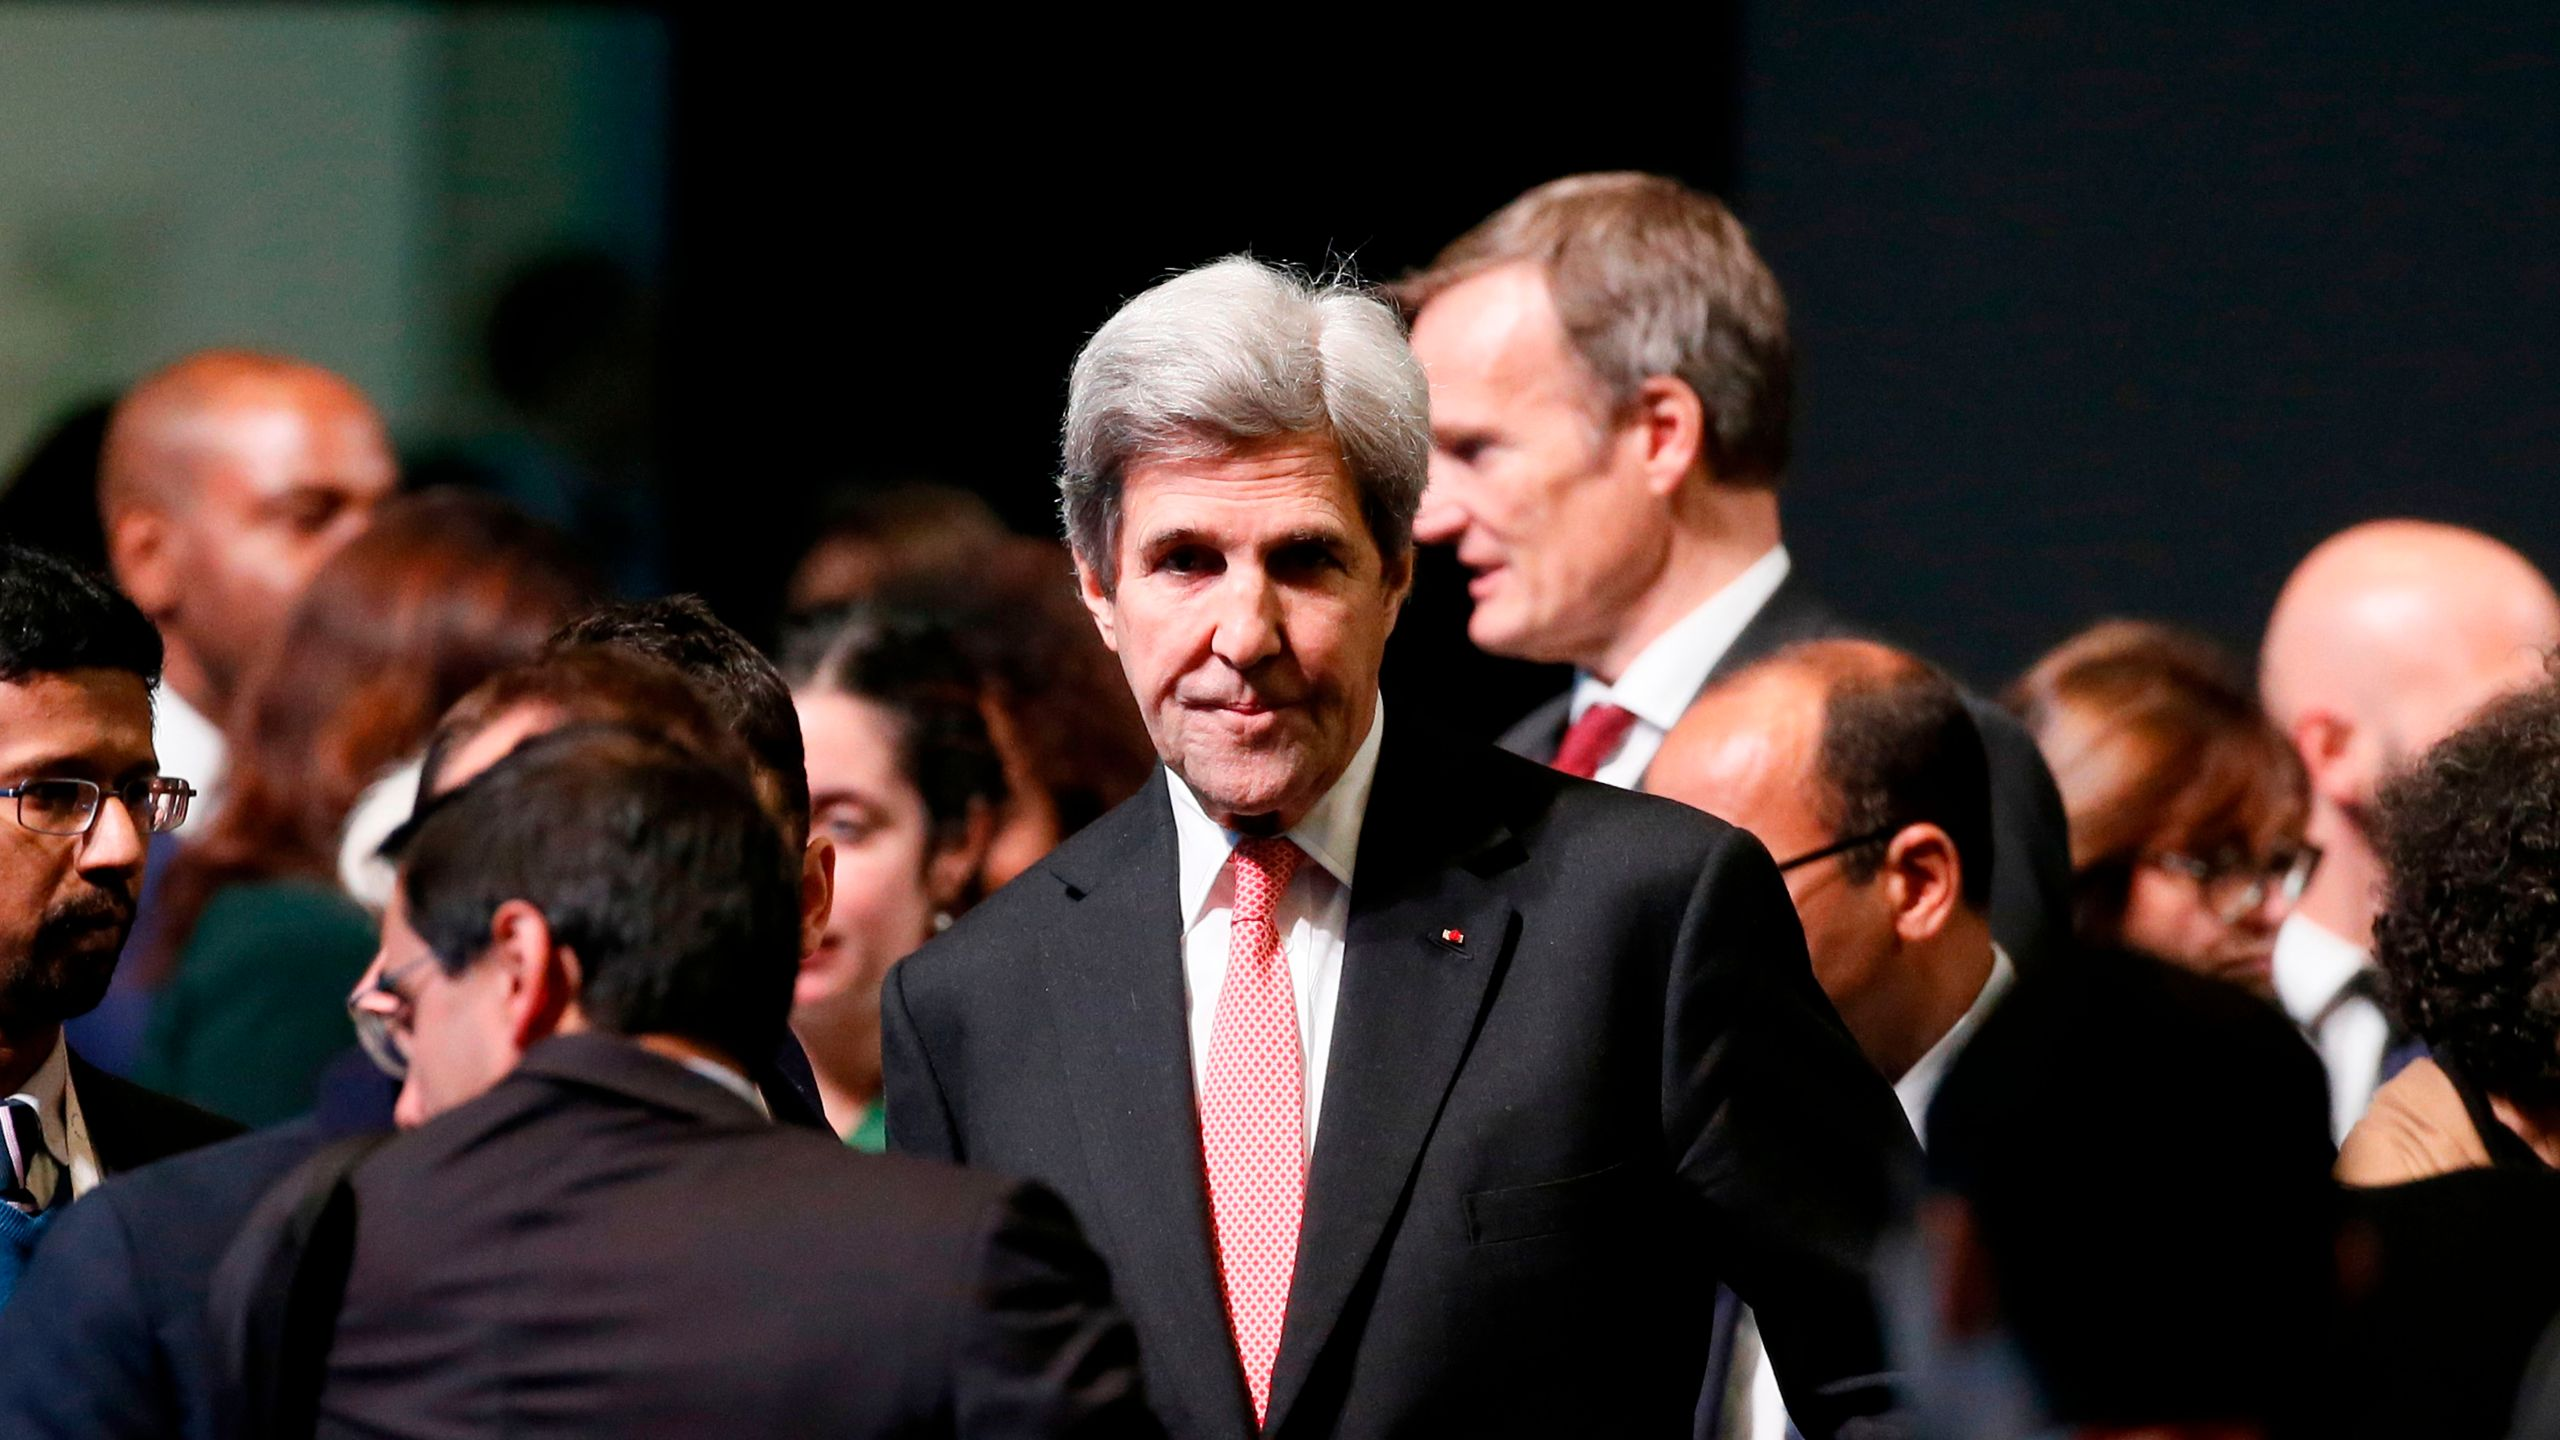 Former U.S. Secretary of State John Kerry arrives to attend the One Planet Summit on Dec. 12, 2017, at La Seine Musicale venue on the ile Seguin in Boulogne-Billancourt, southwest of Paris. (Credit: ETIENNE LAURENT/AFP/Getty Images)